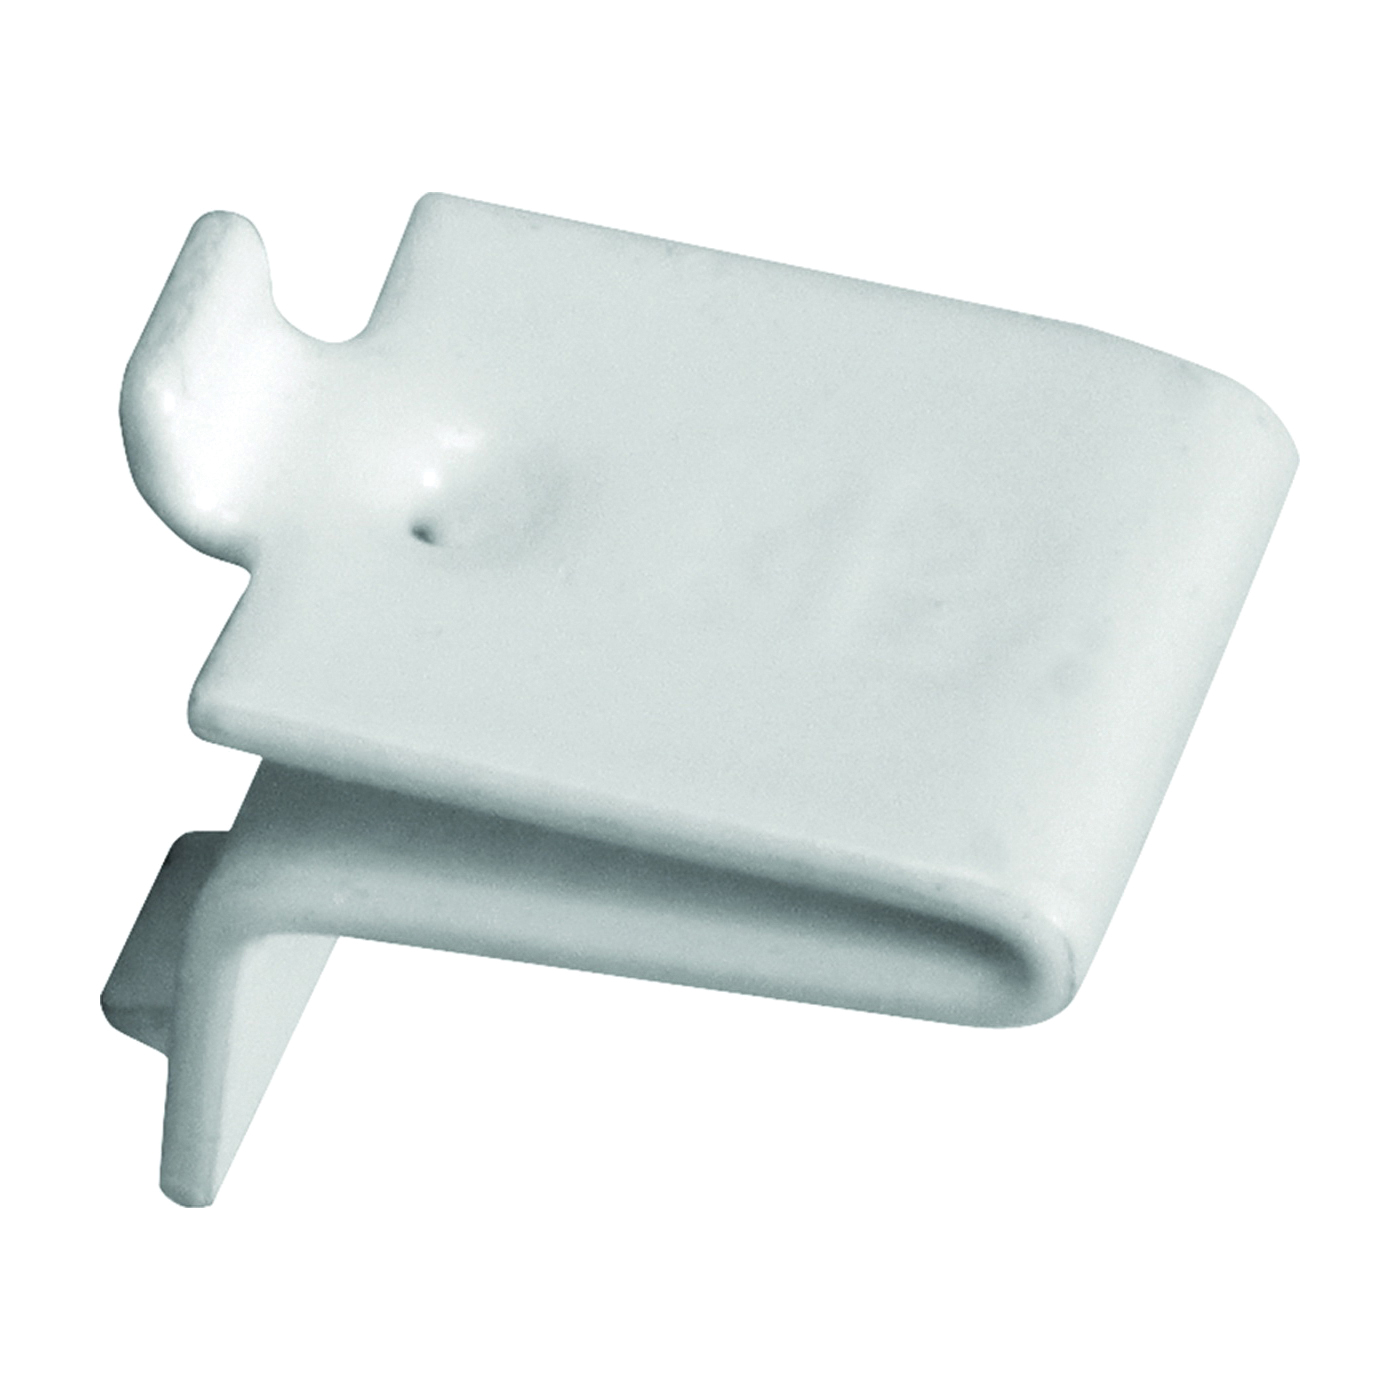 Picture of Knape & Vogt 256S WH Pilaster Shelf Support Clip, Adjustable, Steel, White, 100, Mortise Mounting